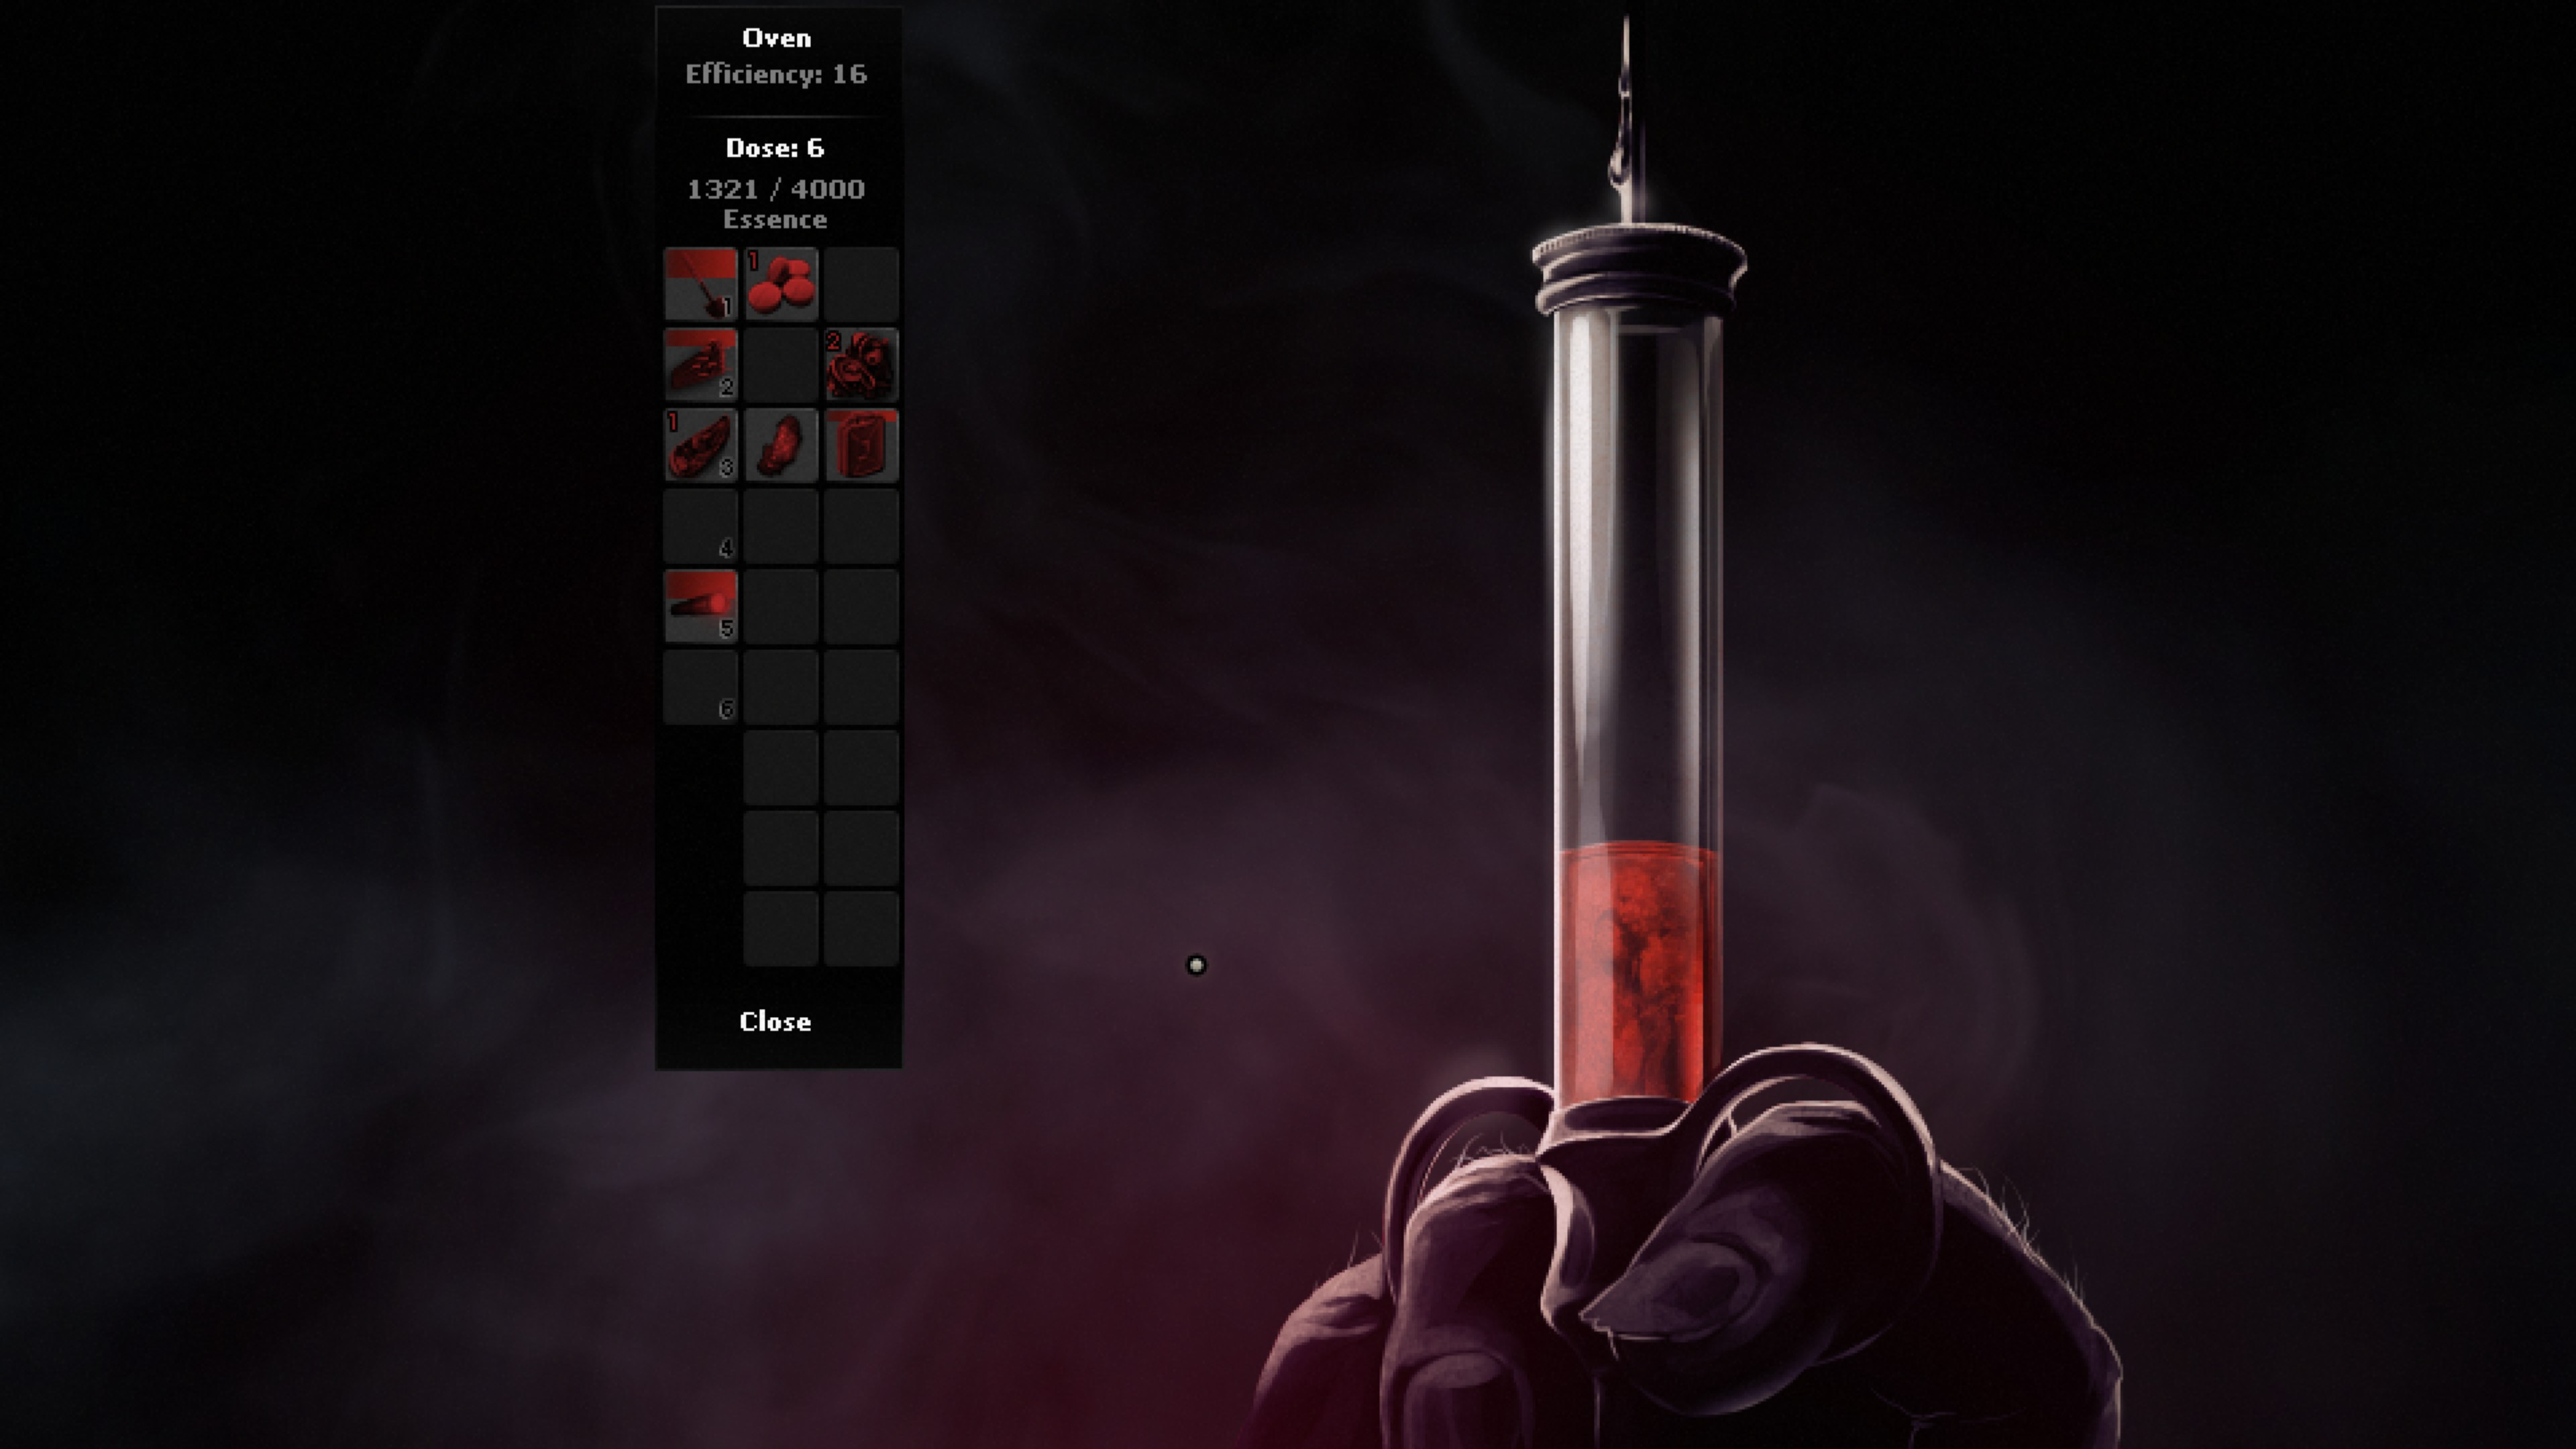 syringe of red liquid. Items from inventory can be added to the oven to extract essence. Currently on dose 6.